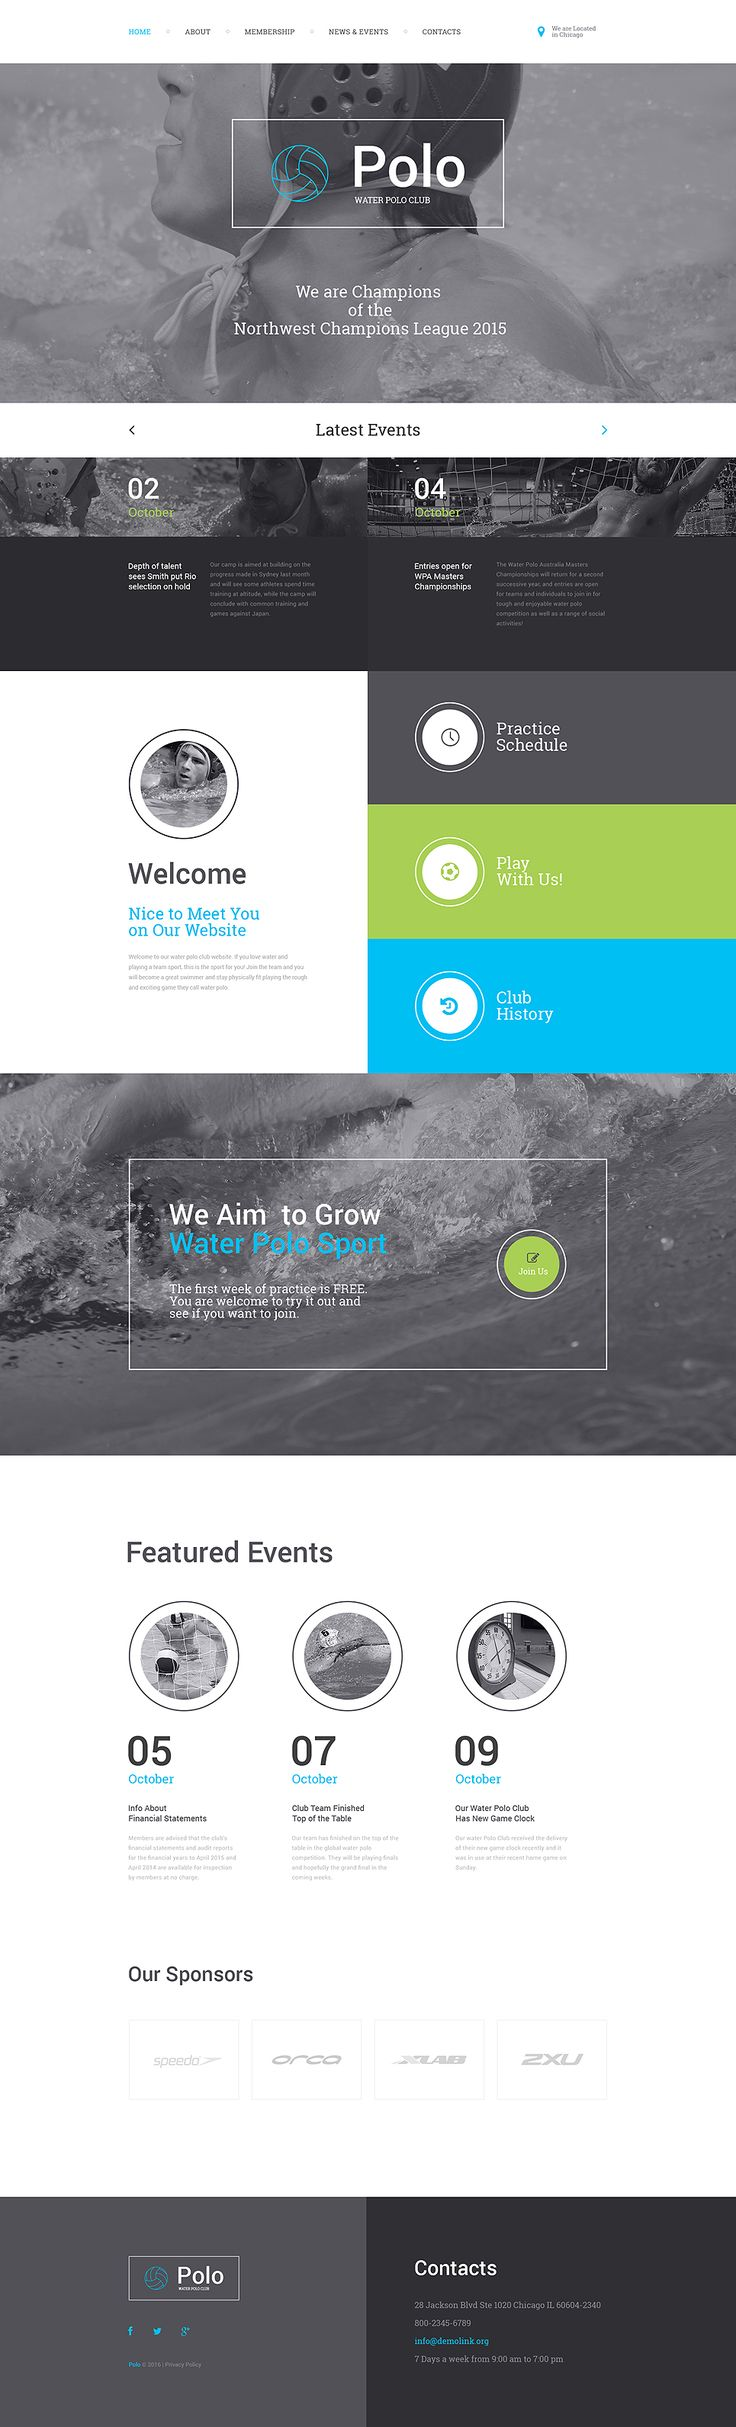 Polo Responsive Website Template #57568